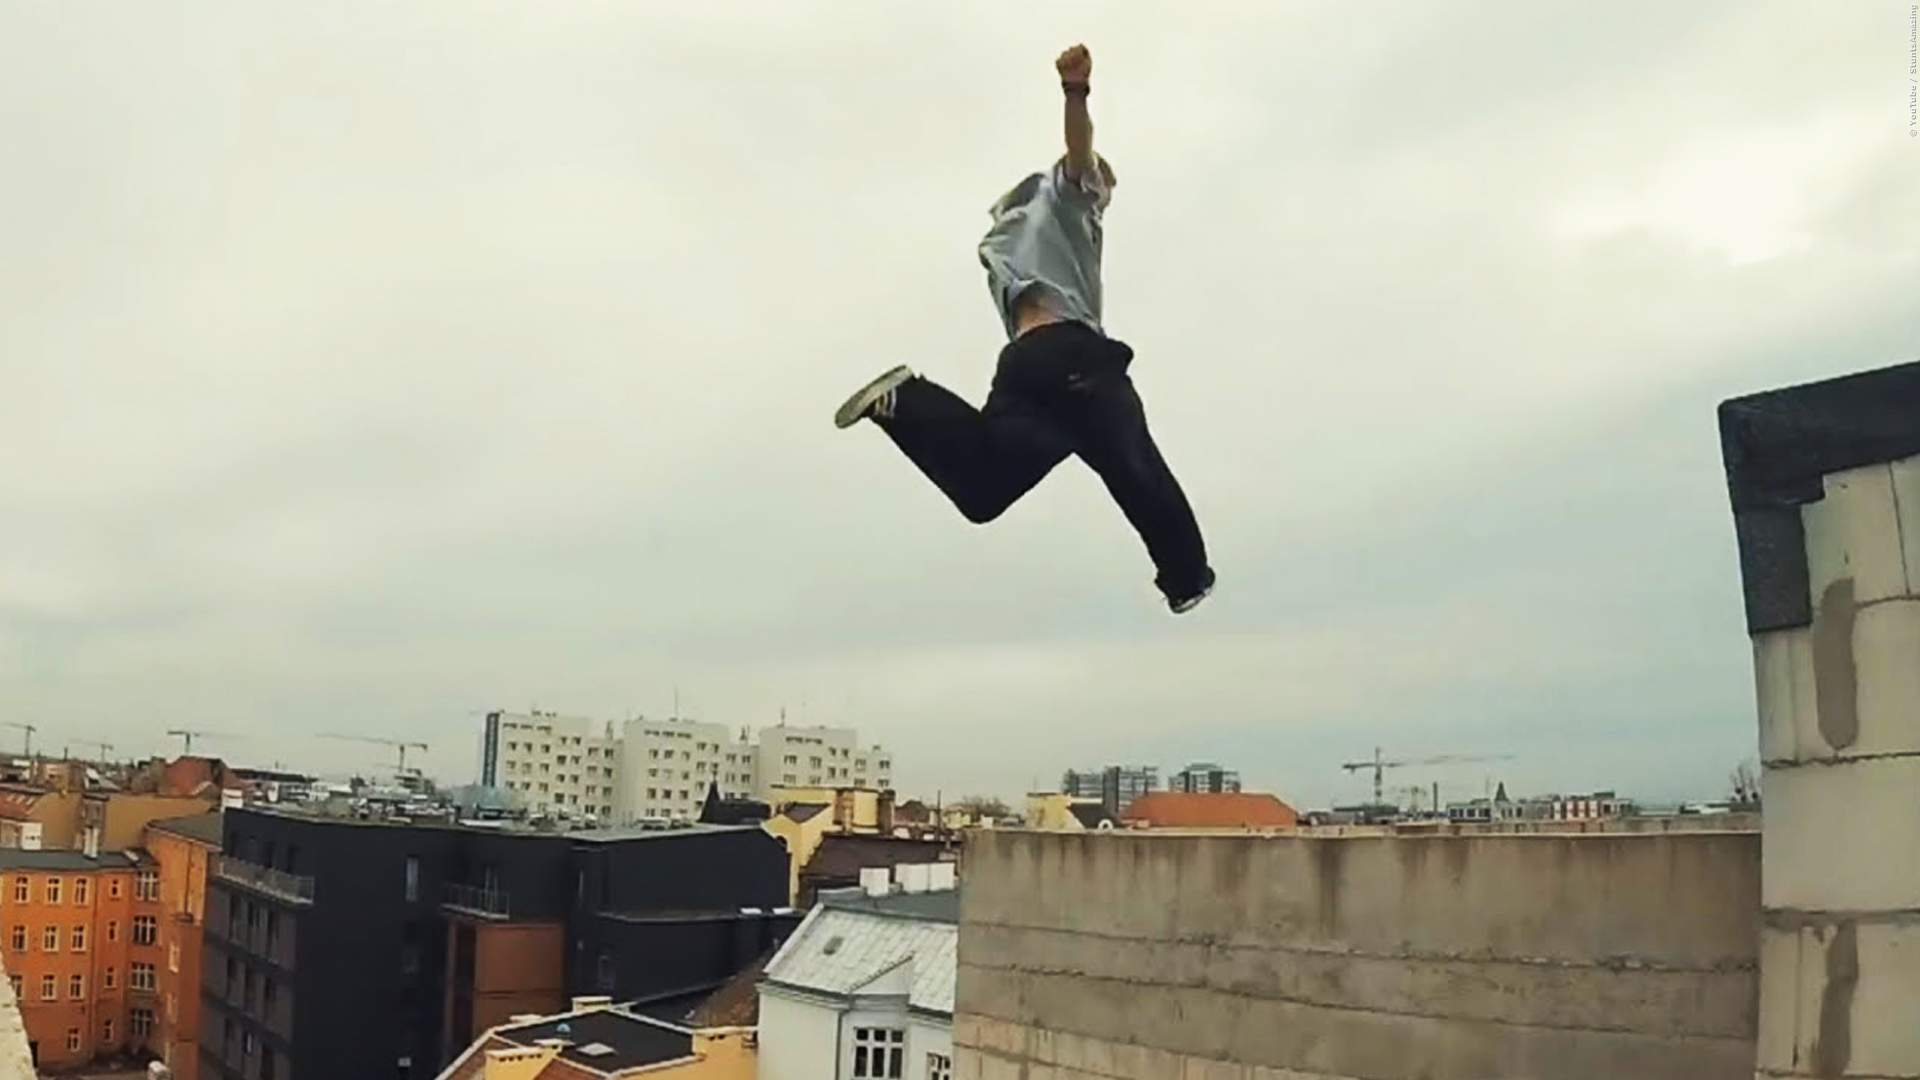 EXTREM-SPORT: Coole Parkour und Freerunning-Moves in Action